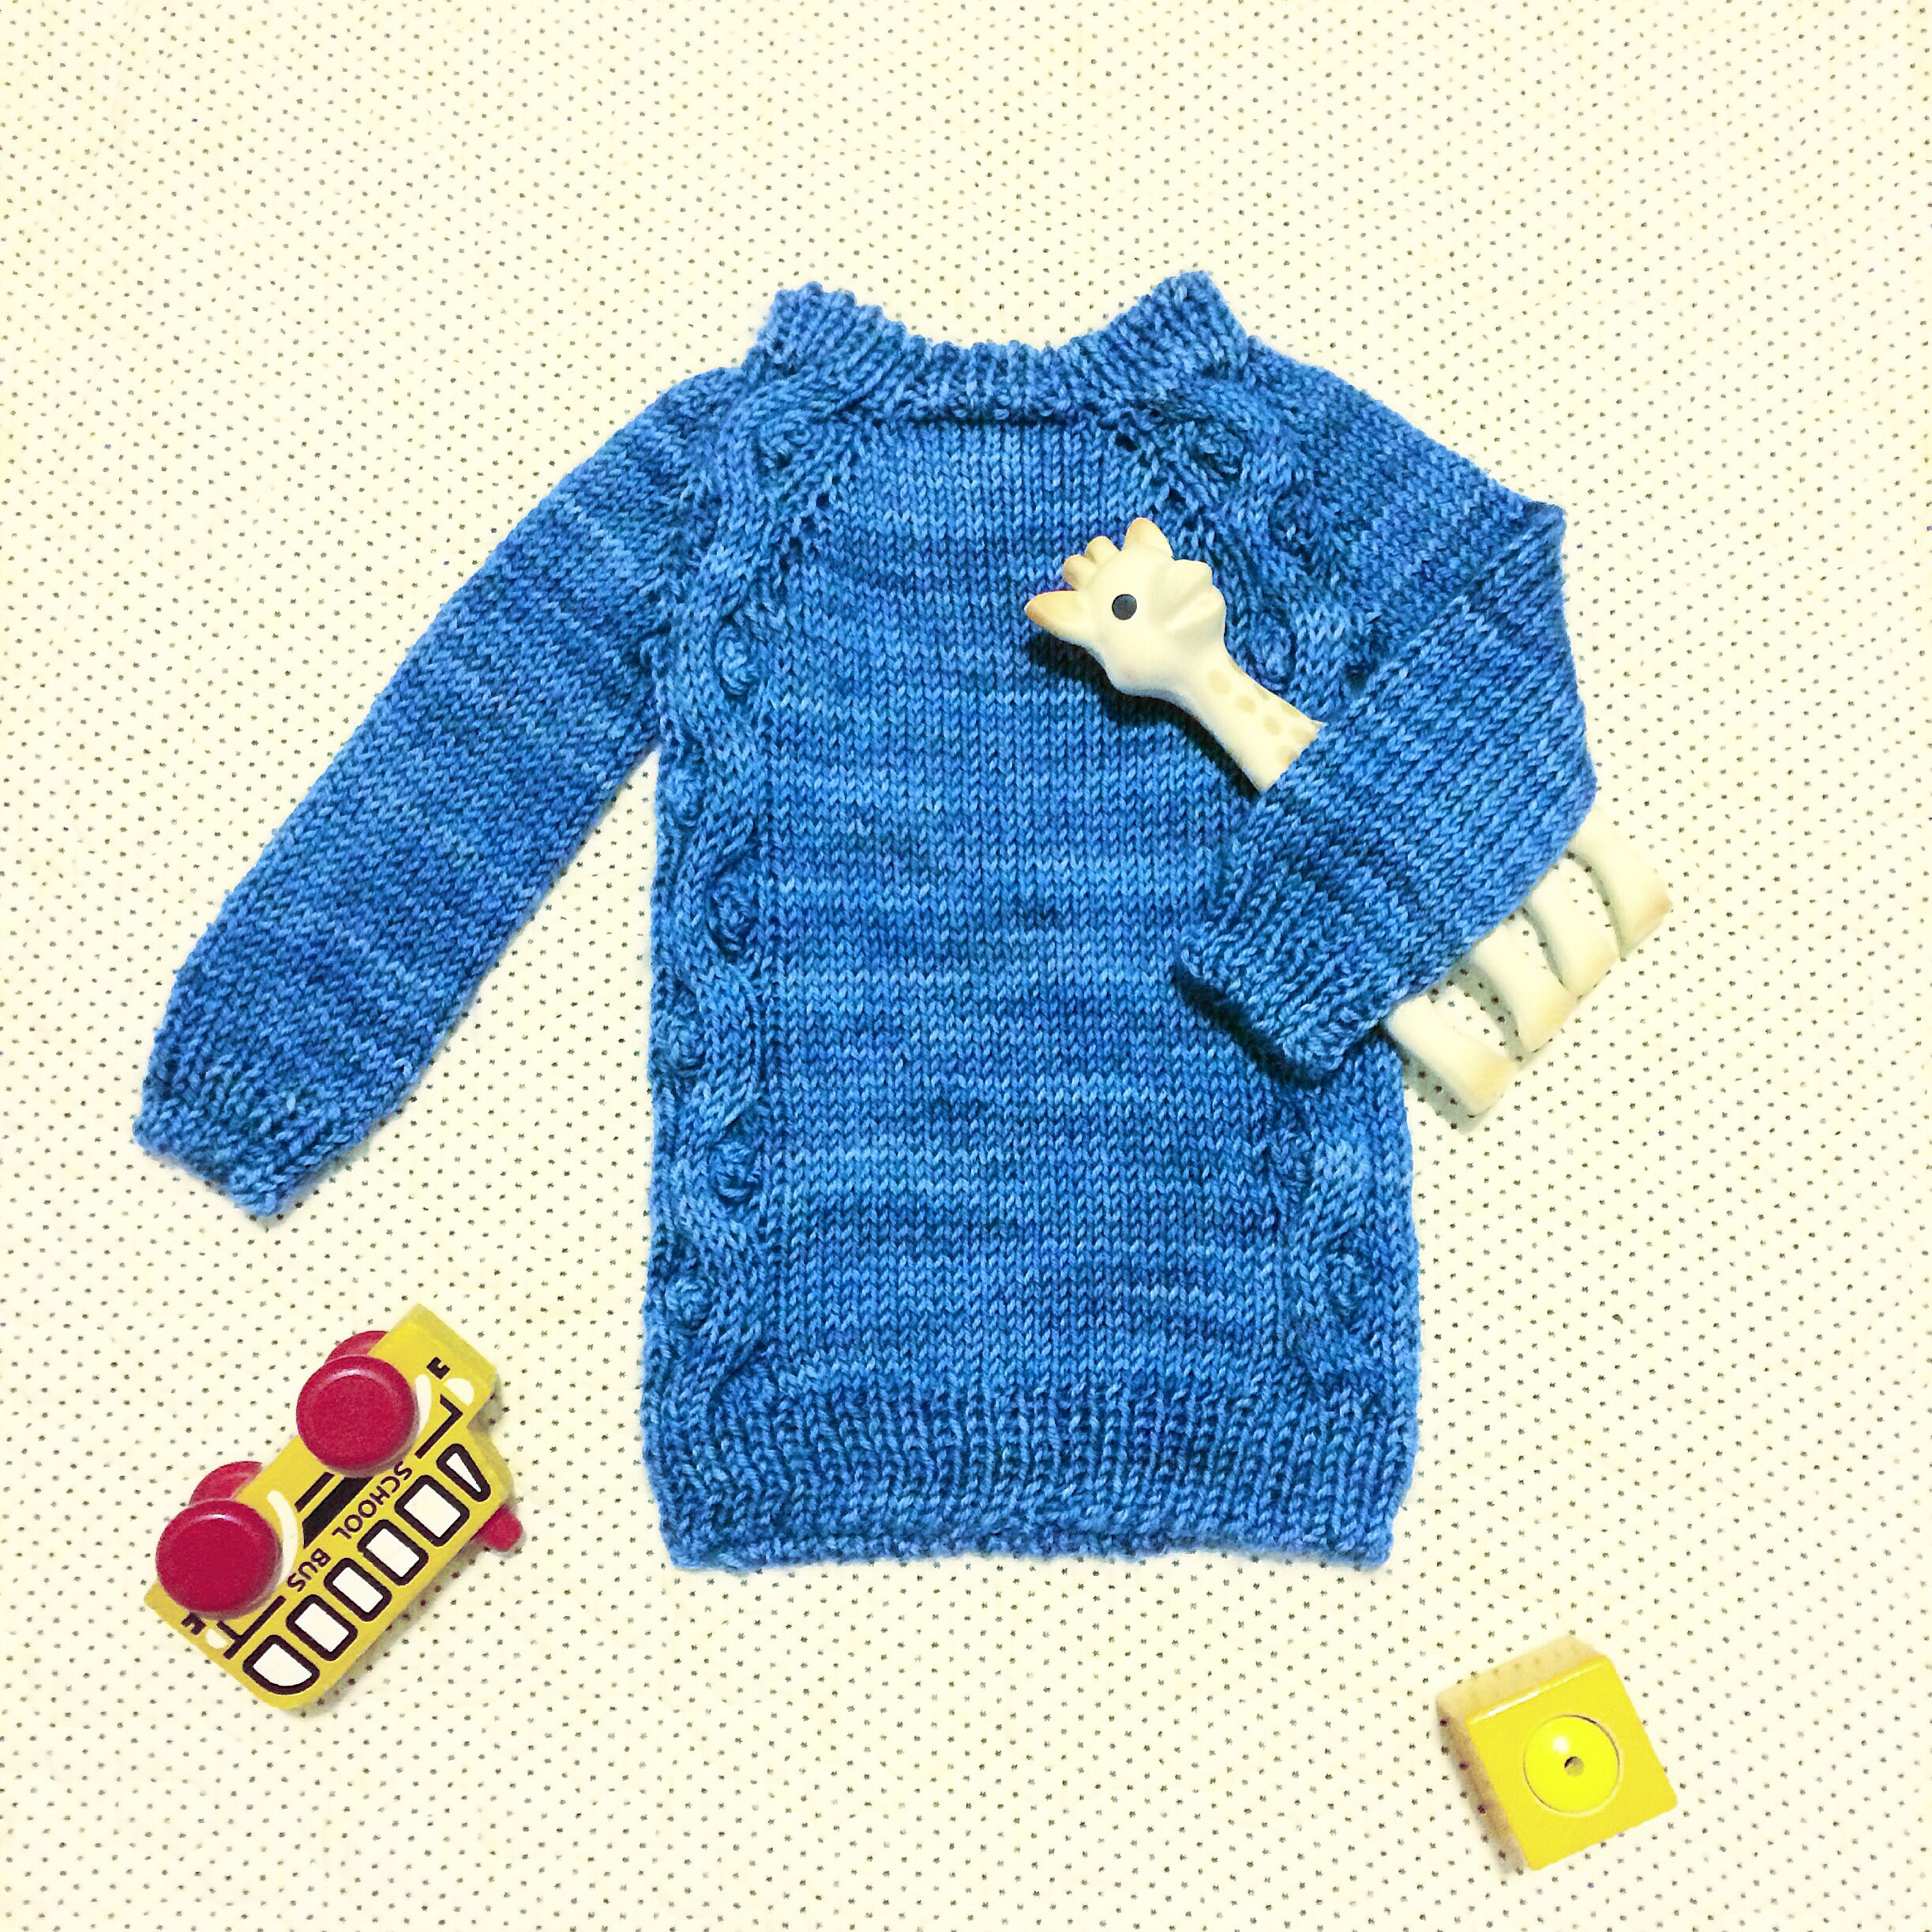 Blue baby sweater with toy giraffe, school bus, and block